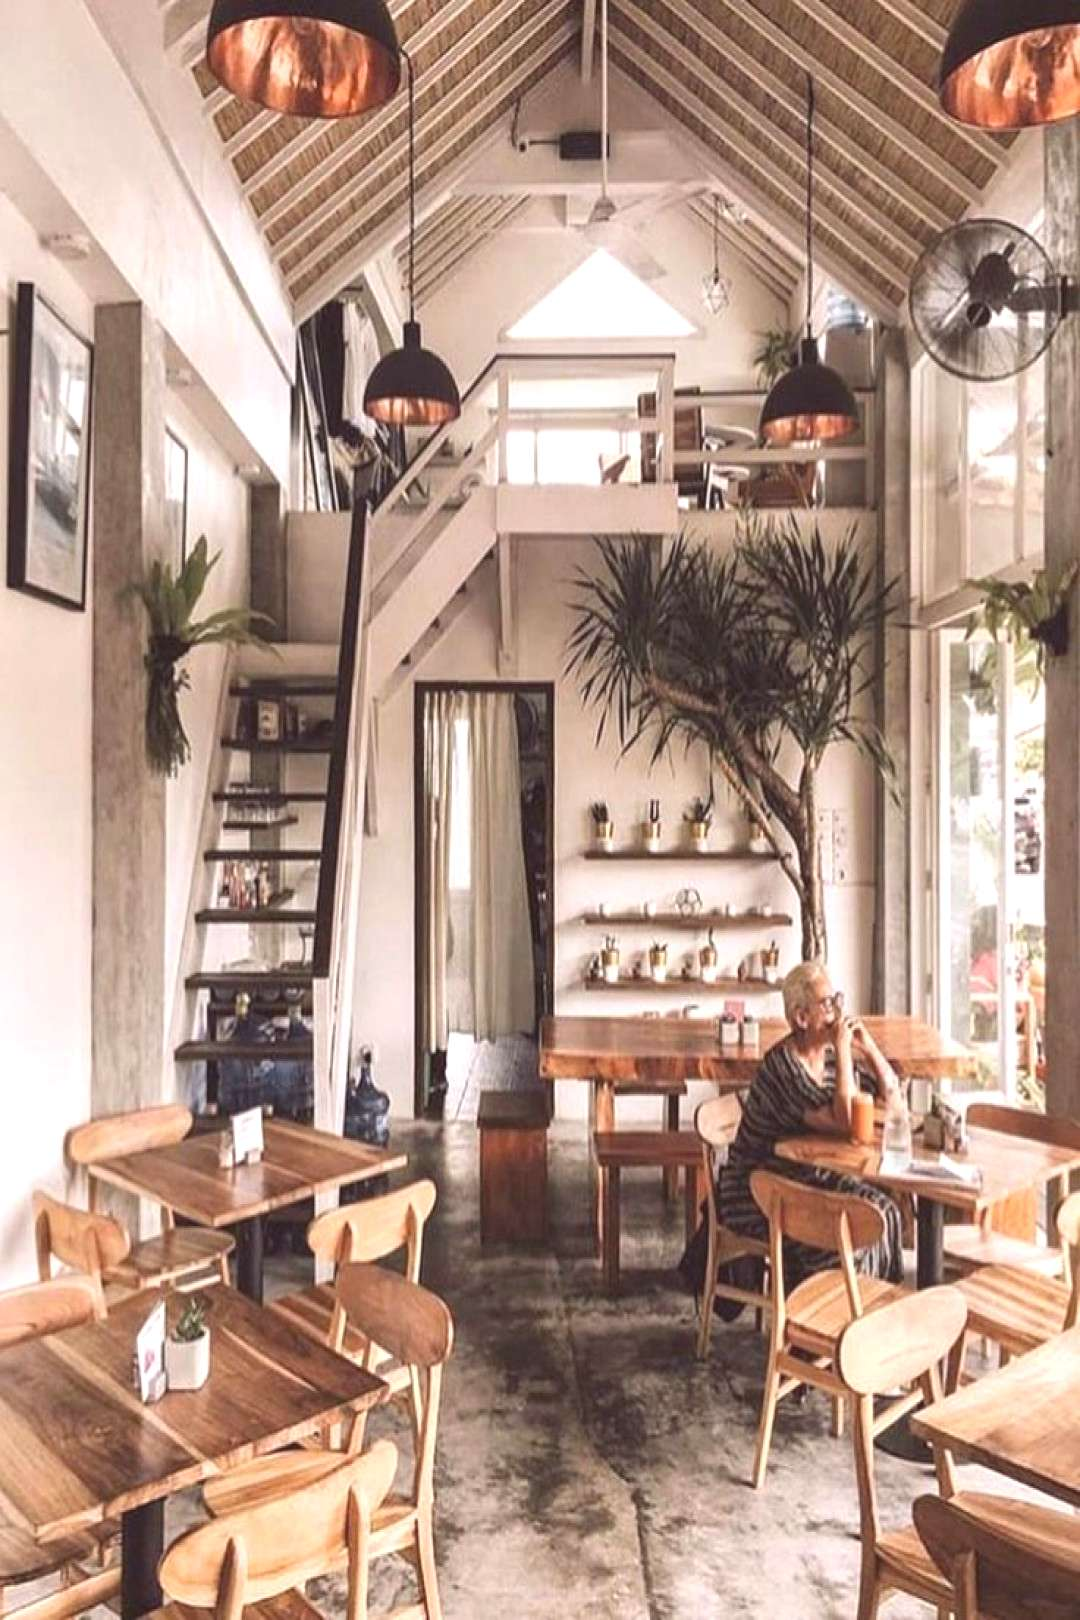 Today there are great deals of coffee shops. To ensure that there is a great deal of one-of-a-kind